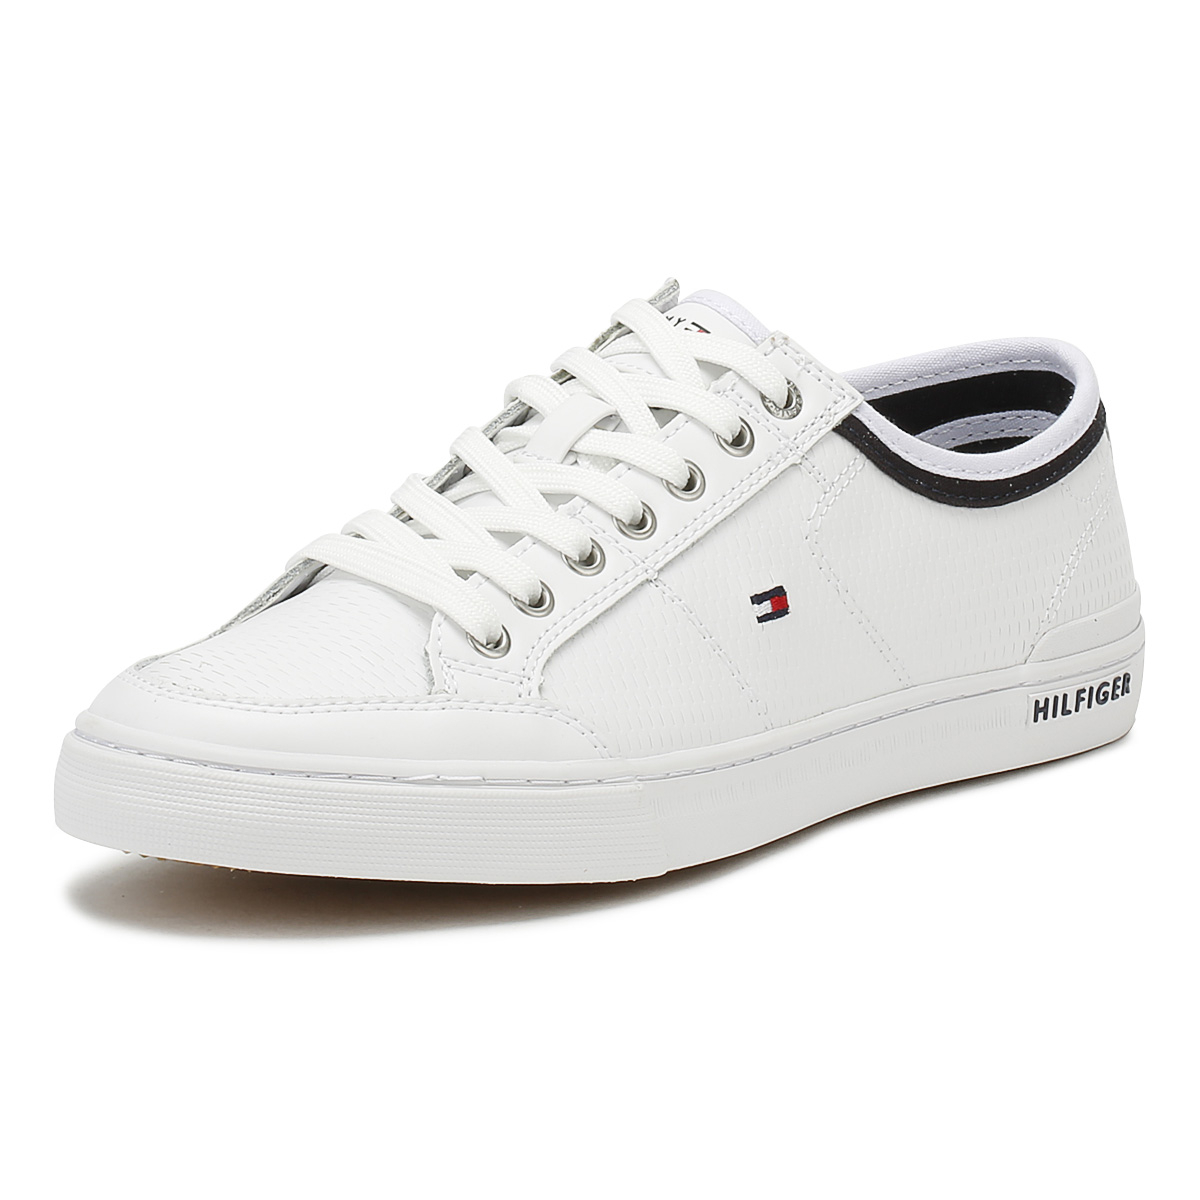 e87d729c73f9 Details about Tommy Hilfiger Mens Trainers White Corporate Leather Lace Up  Casual Shoes